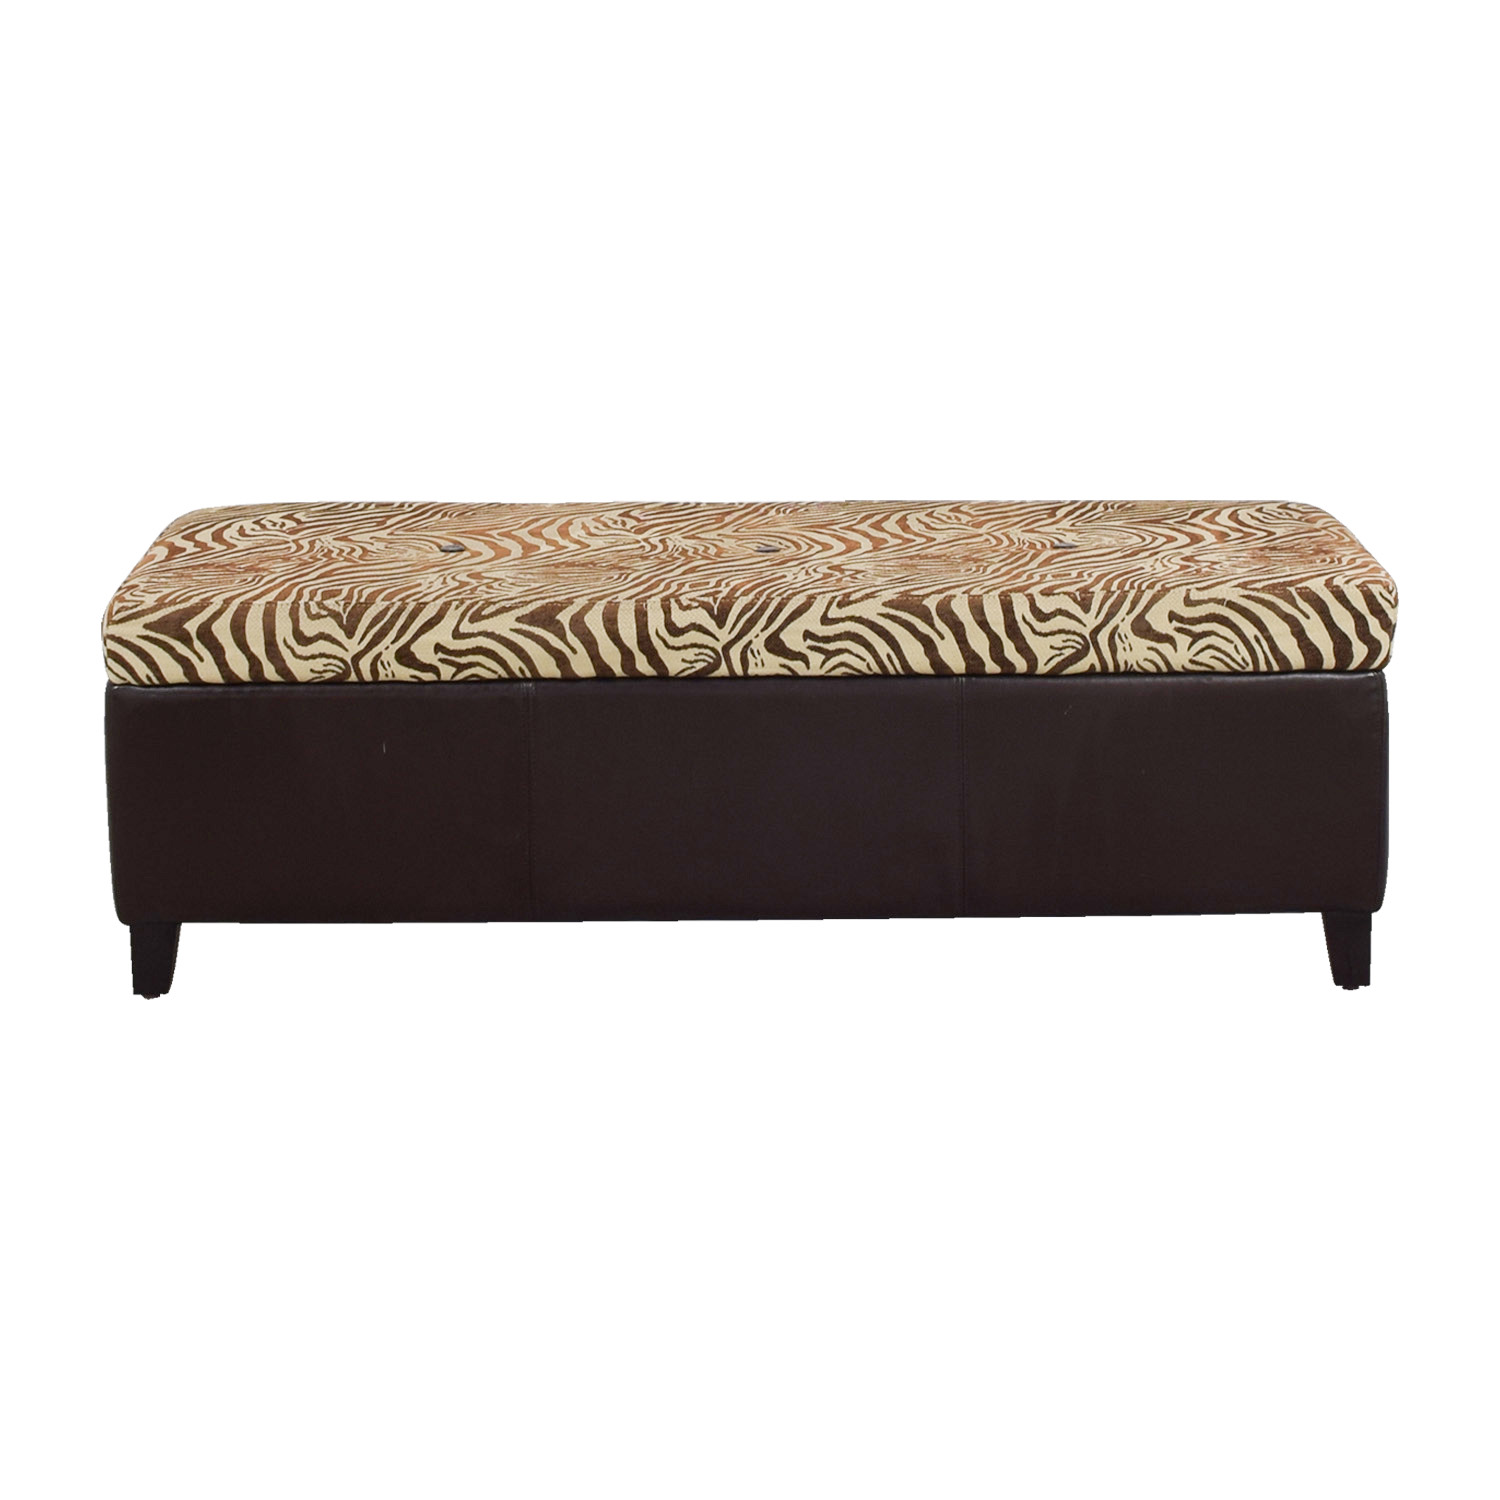 Pier 1 Imports Pier 1 Imports Brown Zebra Storage Trunk second hand